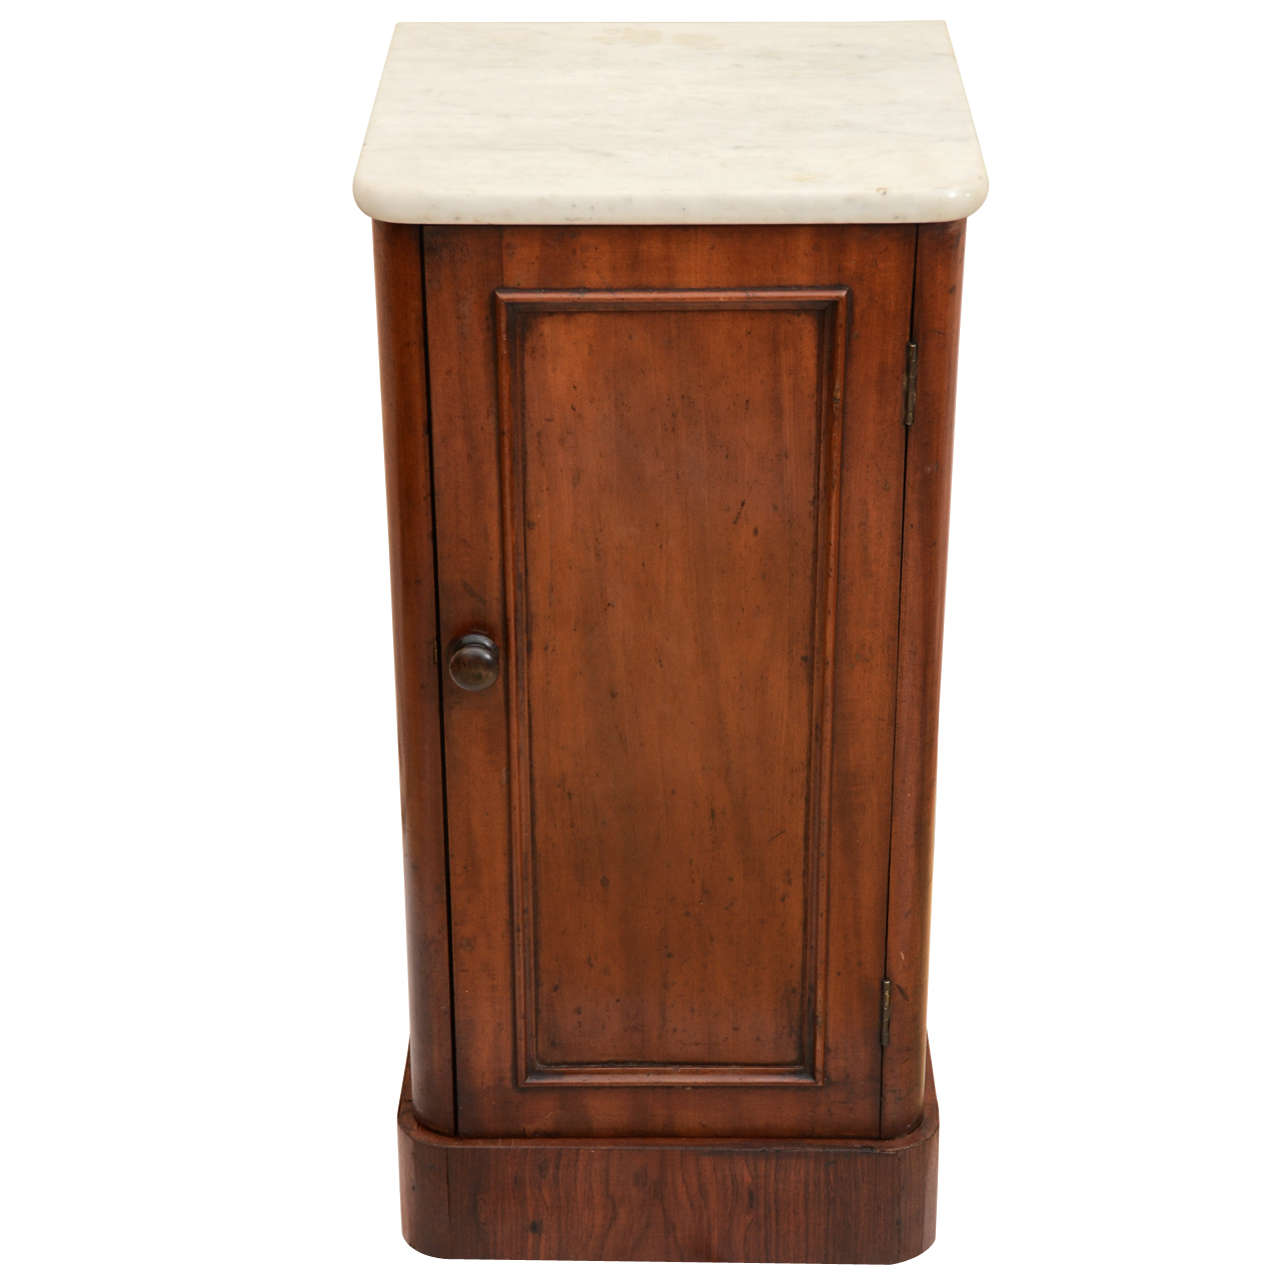 English Mahogany Marble Top Bedside Cabinet